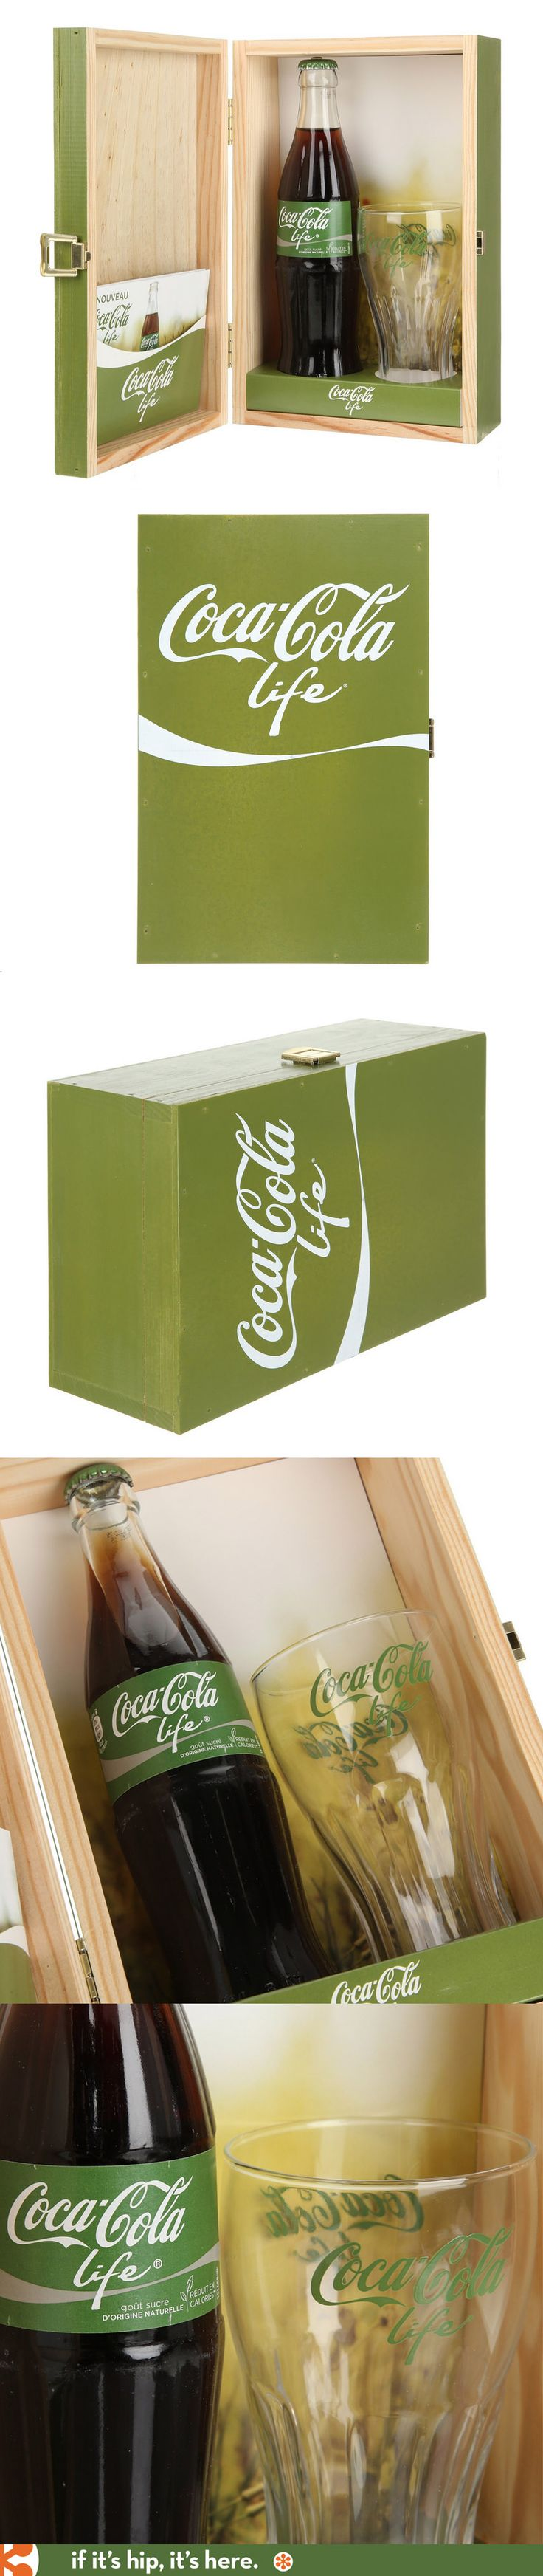 The Coke Life Box Set. Limited edition of 50.